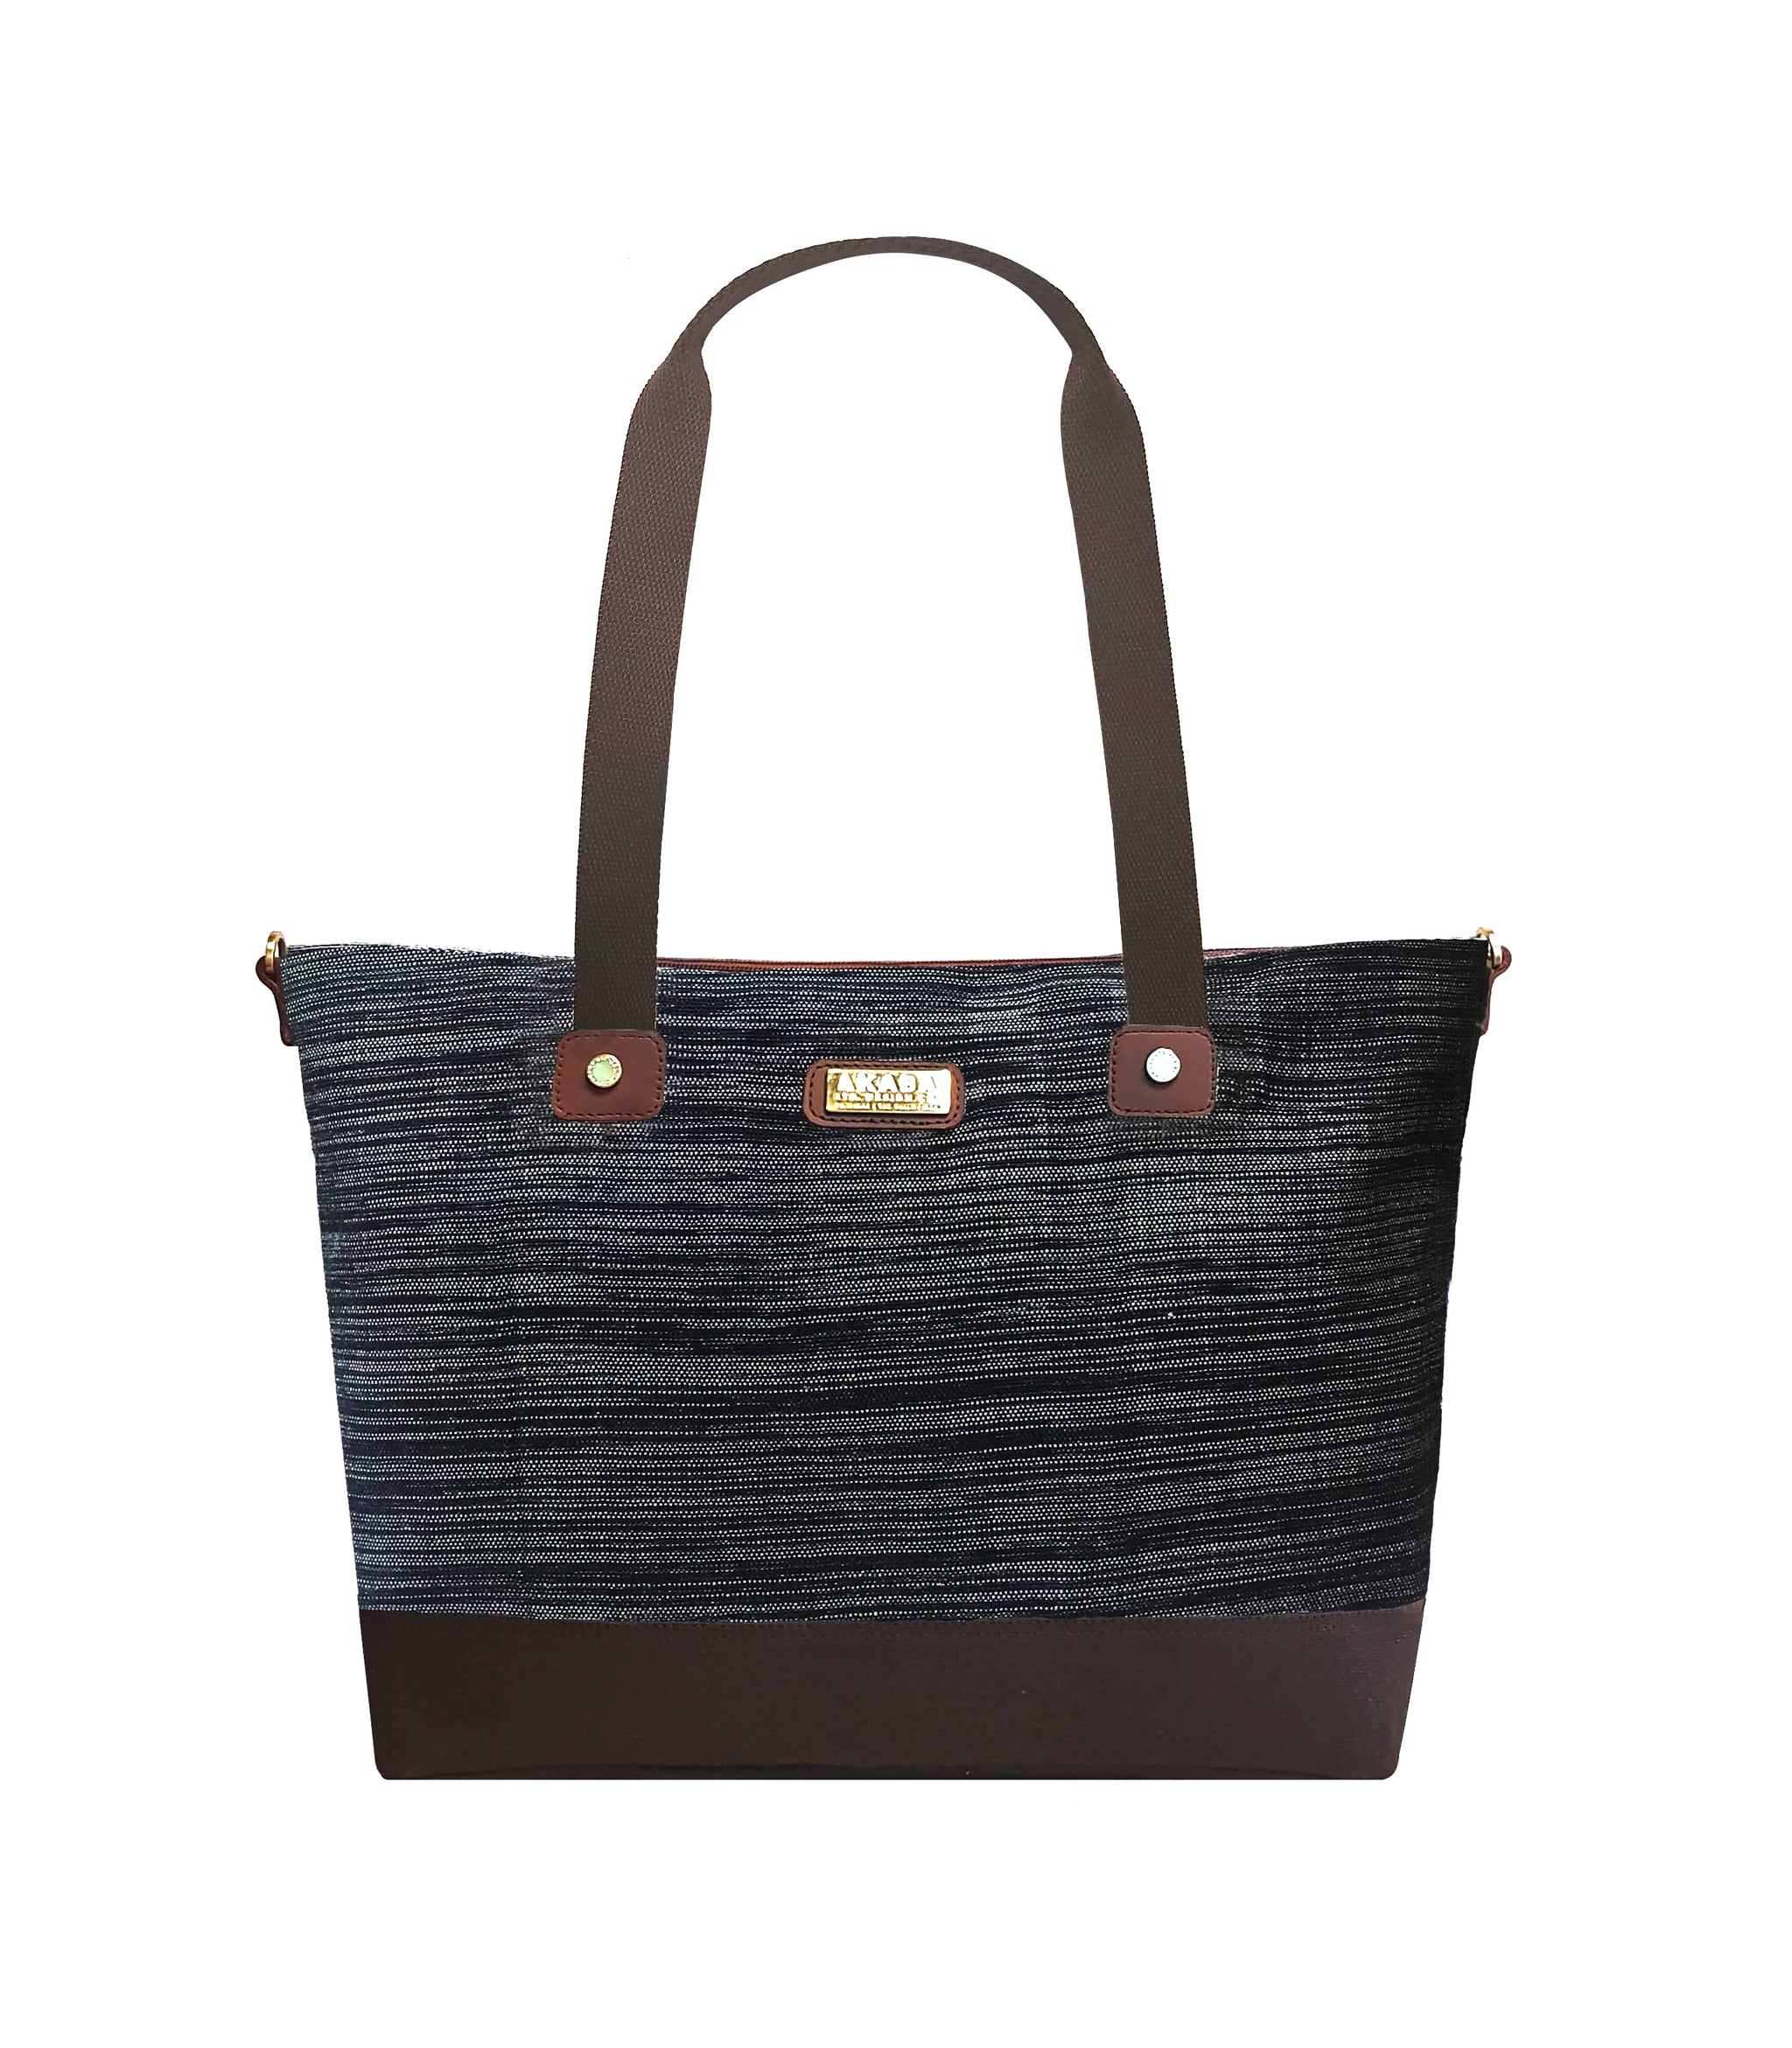 Mayon Tote Bag in Black - AKABA